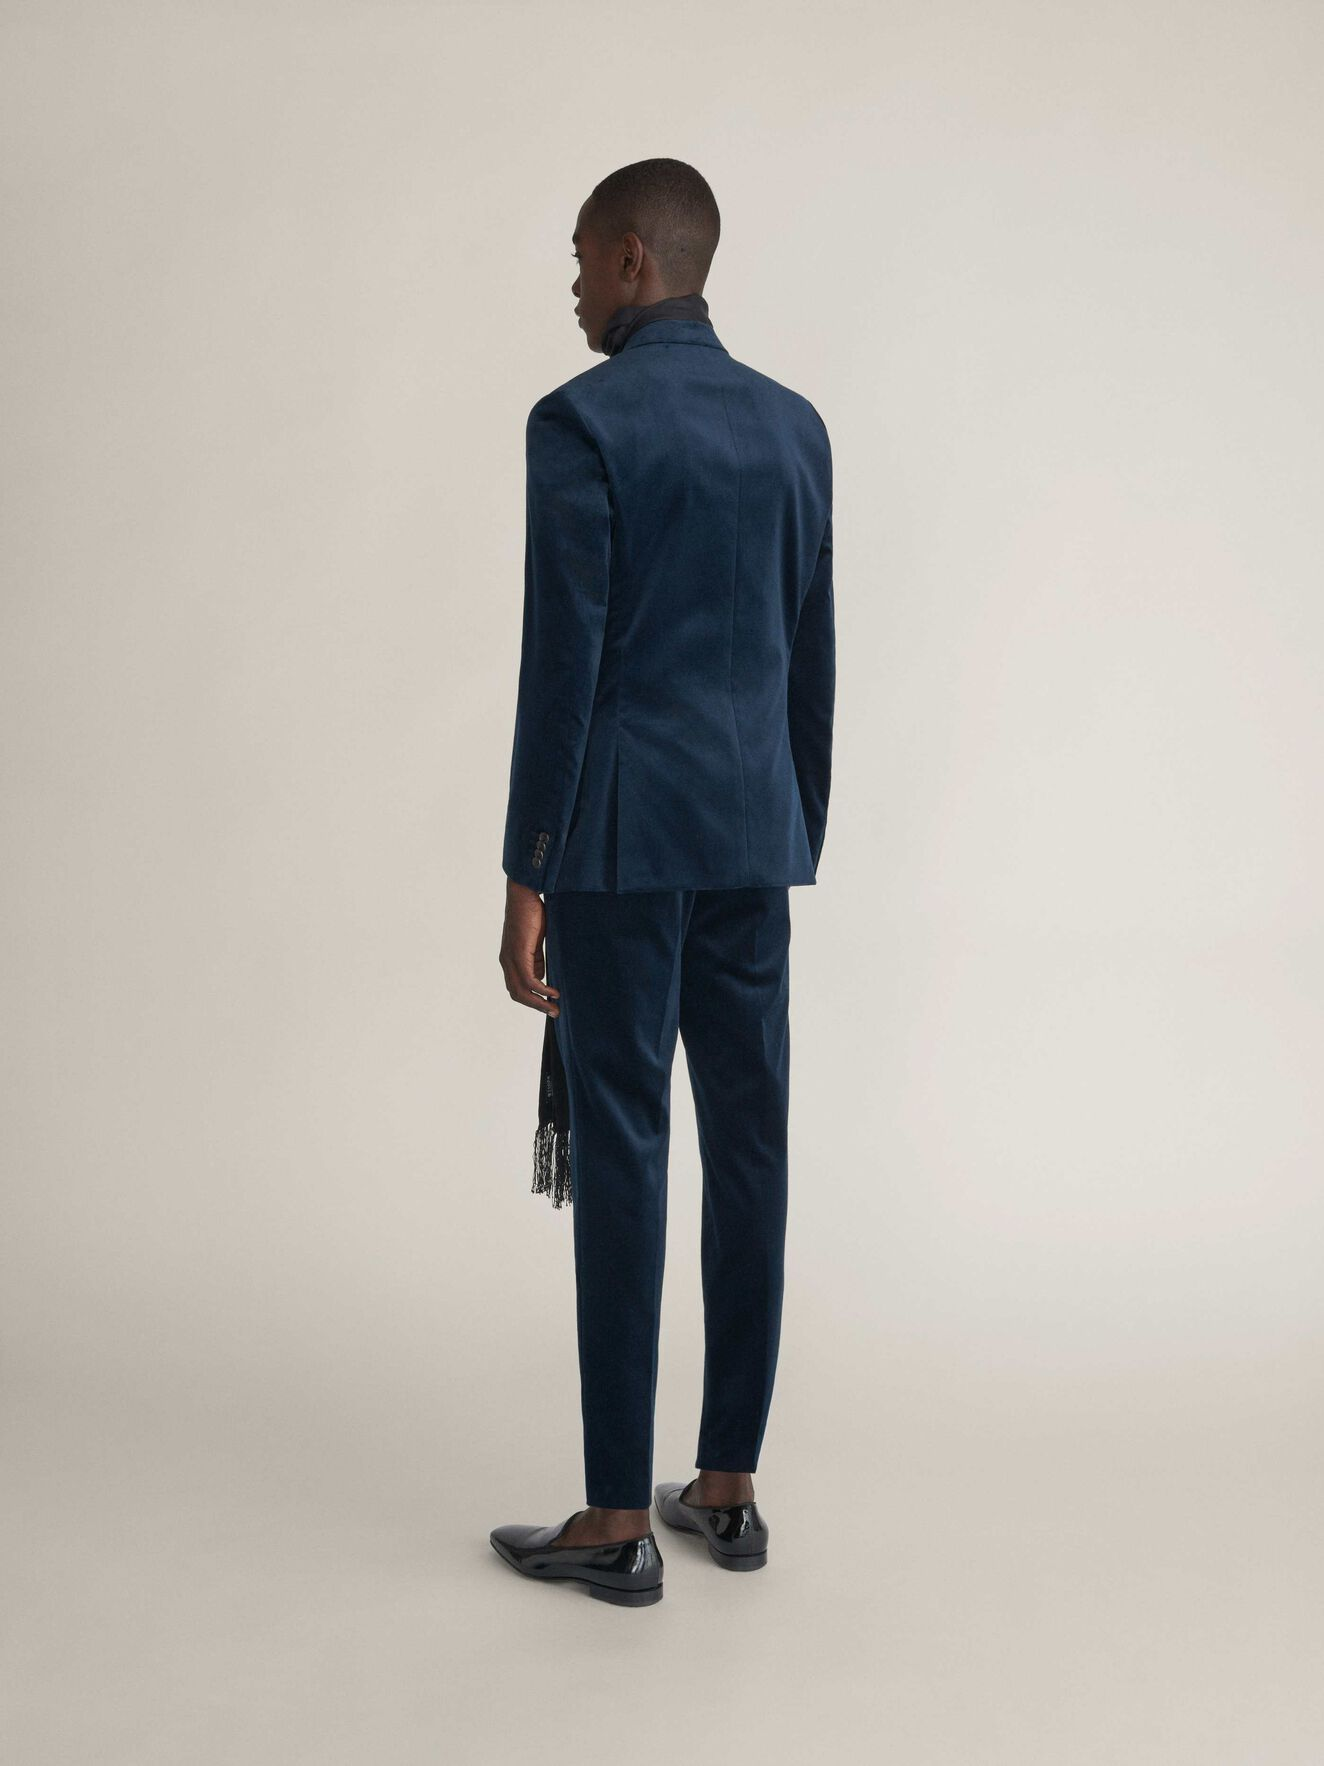 Jamonte Blazer in Blues from Tiger of Sweden